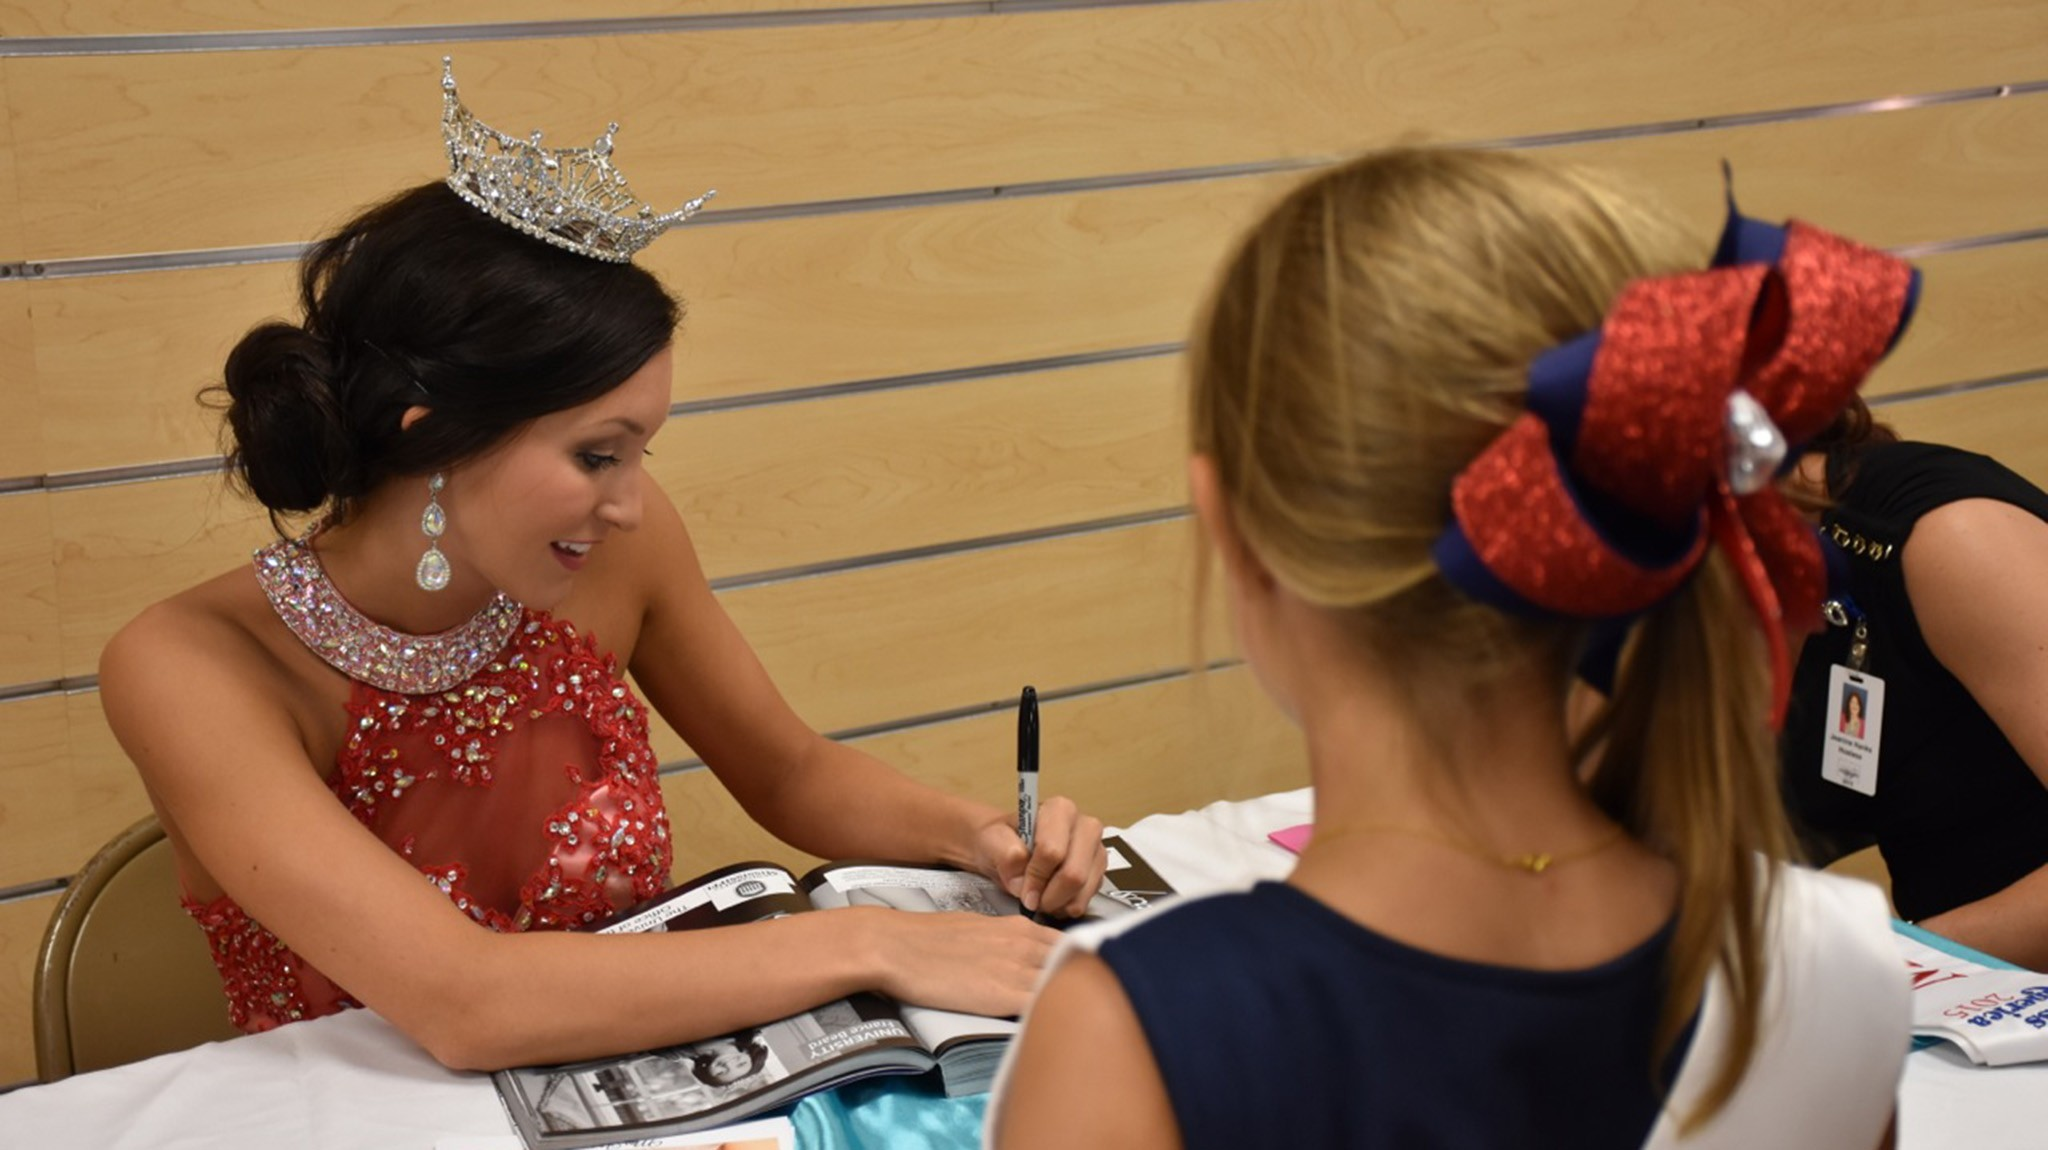 Miss University, France Beard, signs autographs for a future Rebel at an autograph party in Vicksburg. France is competing this week in Vicksburg at the Miss Mississippi Pageant.